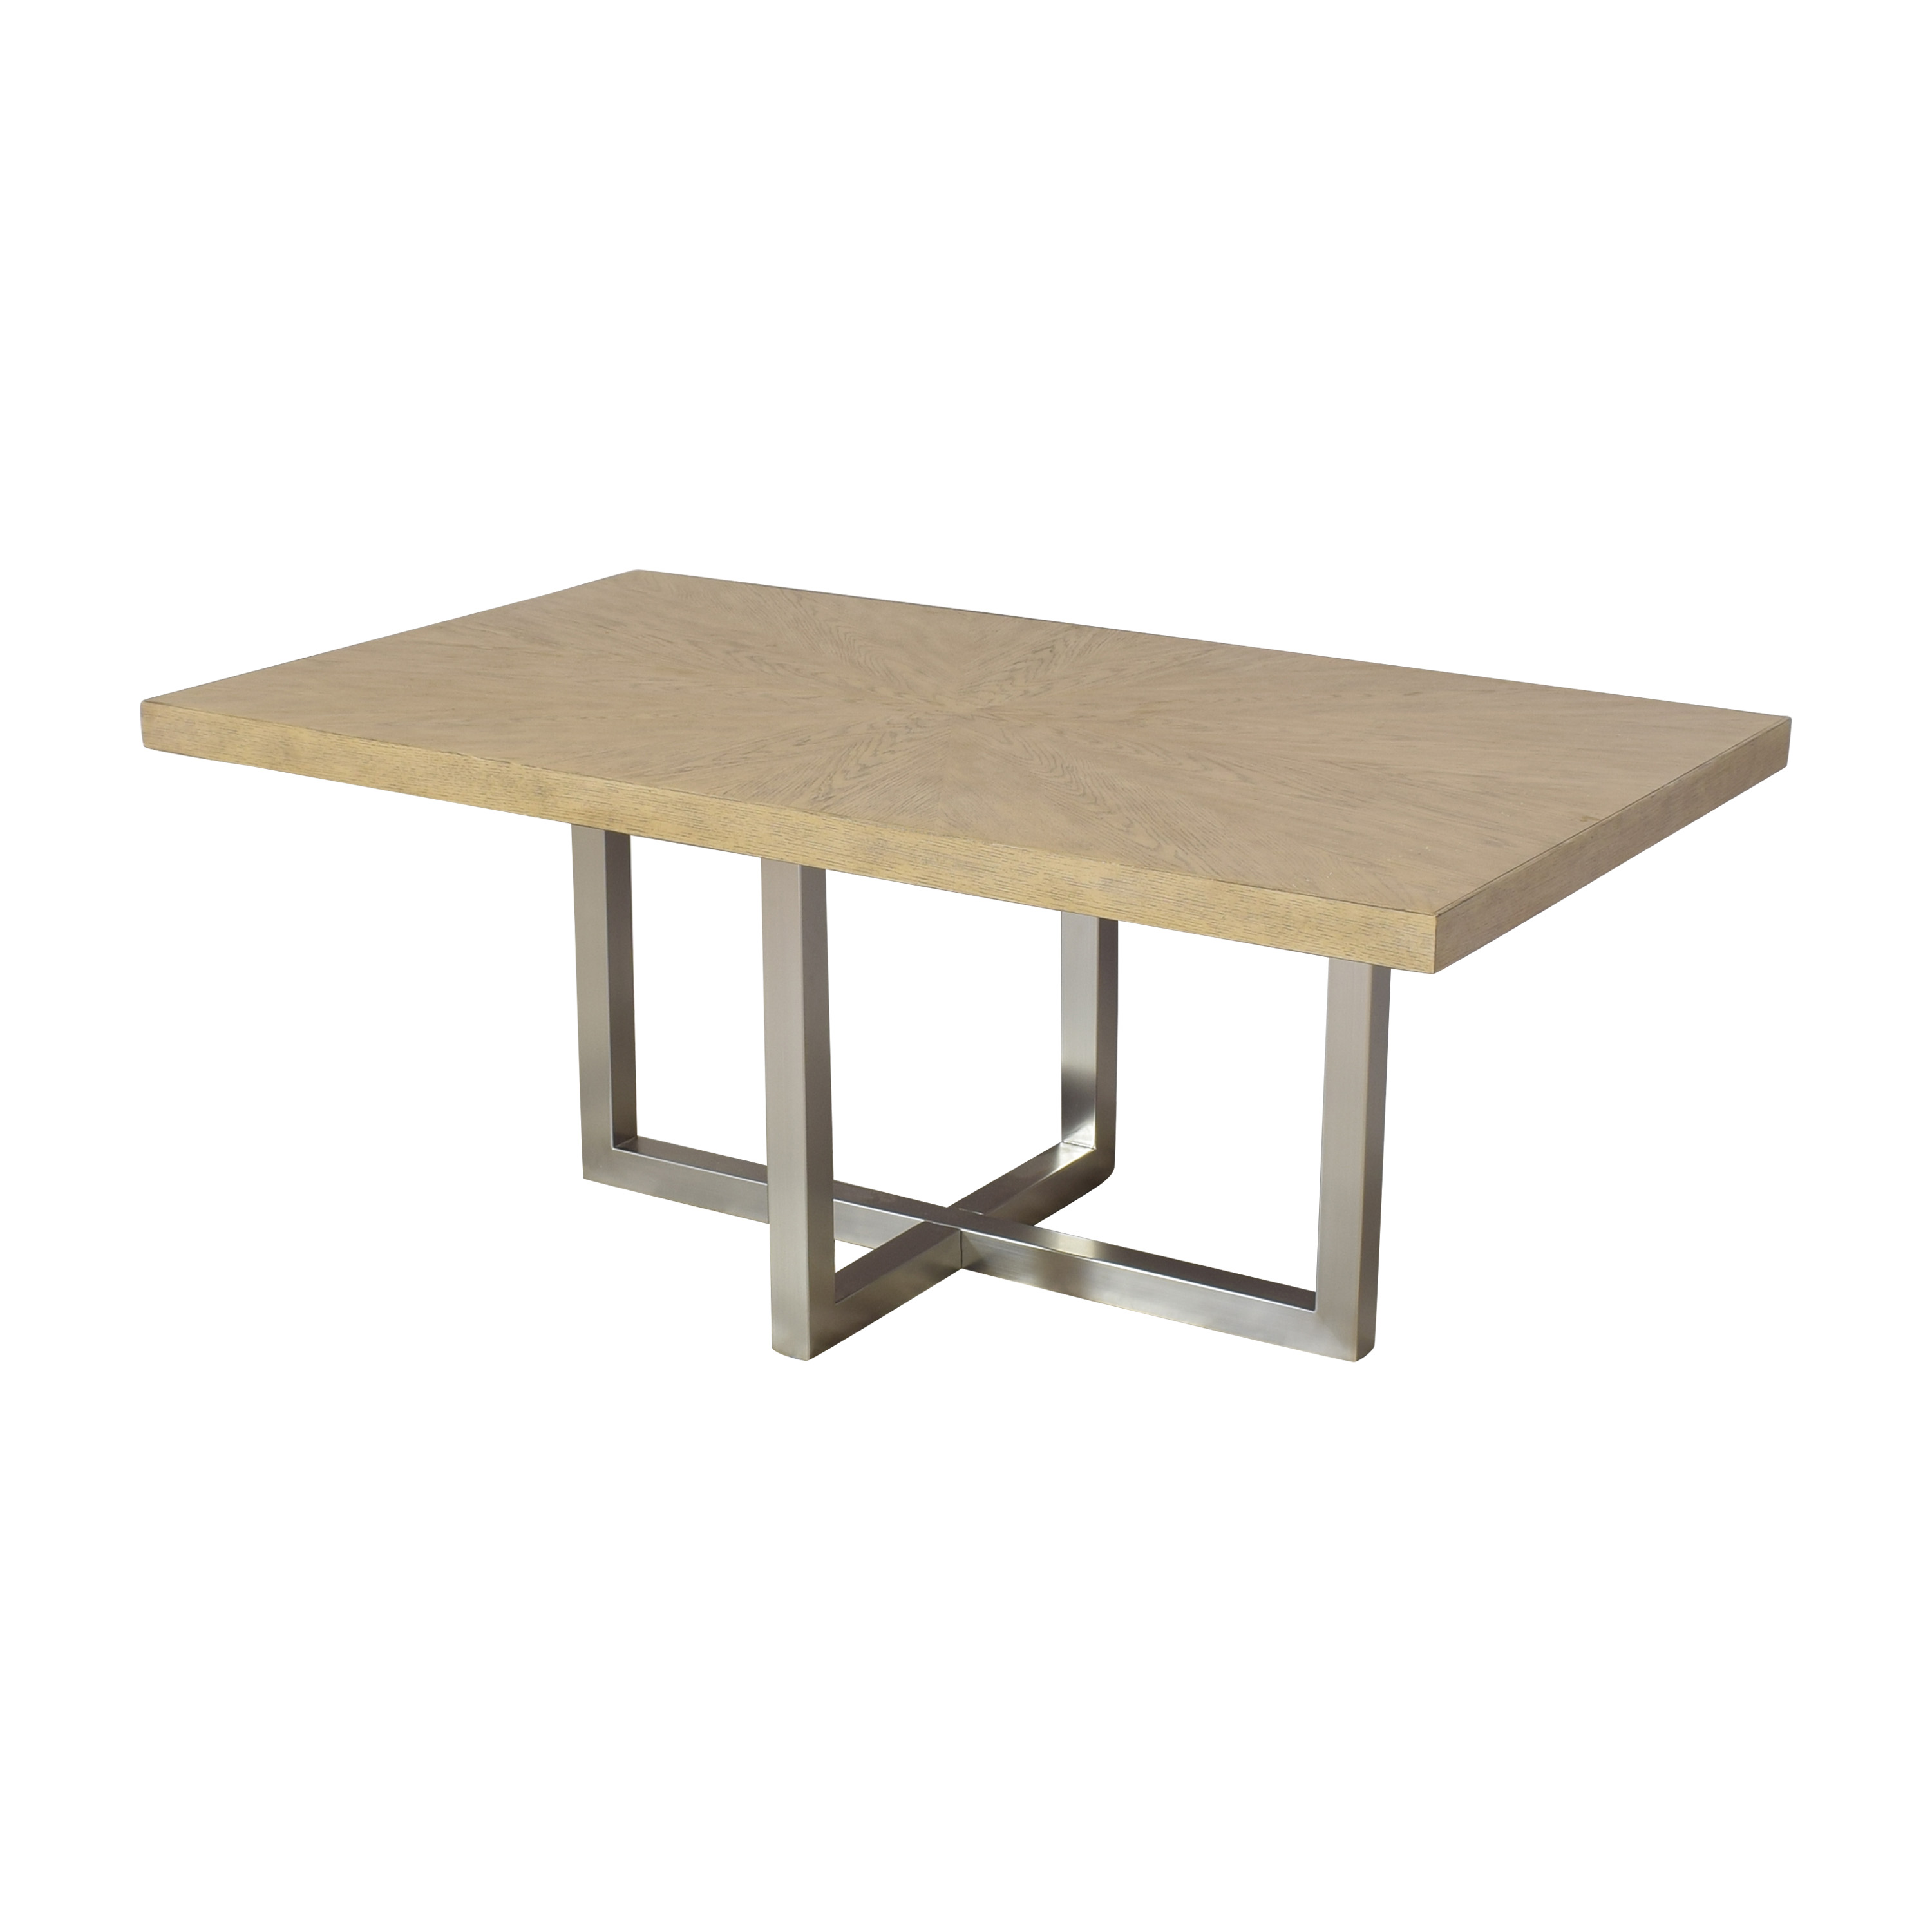 Macy's Altair Contemporary Dining Table / Dinner Tables